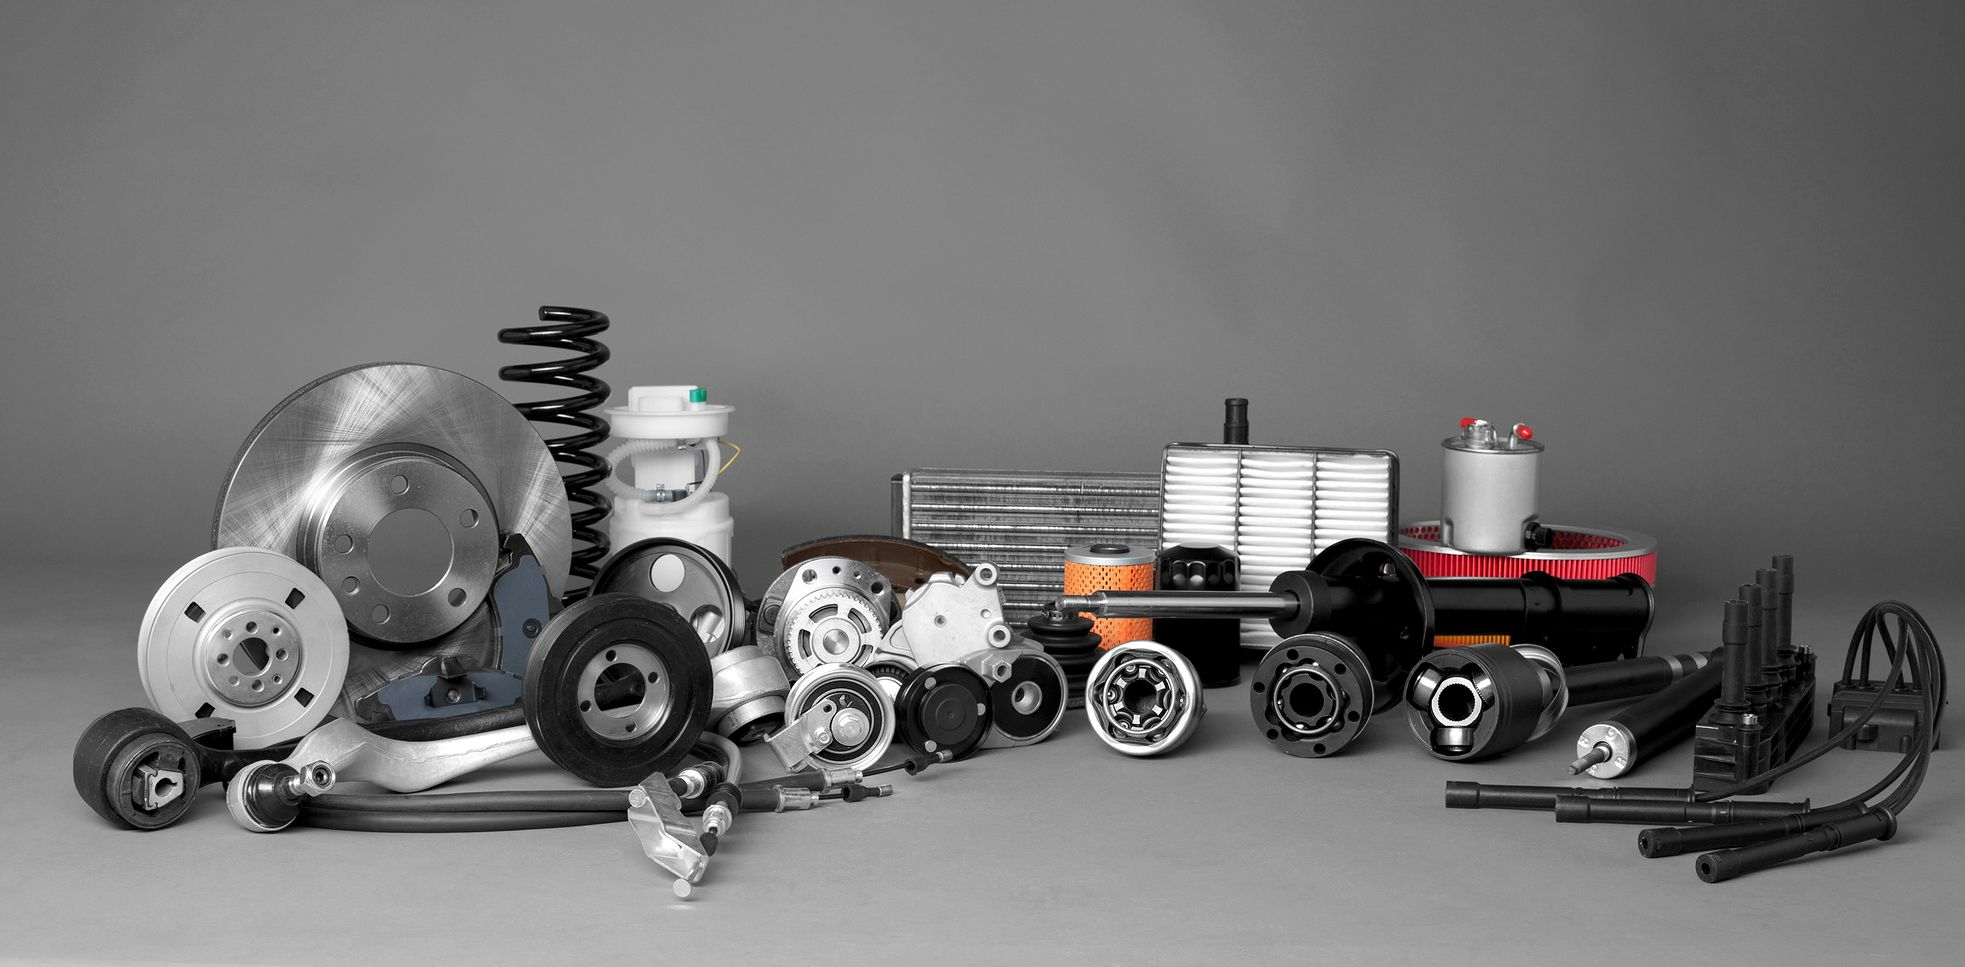 Shop Genuine Car Spare Parts from M2ALL powered by